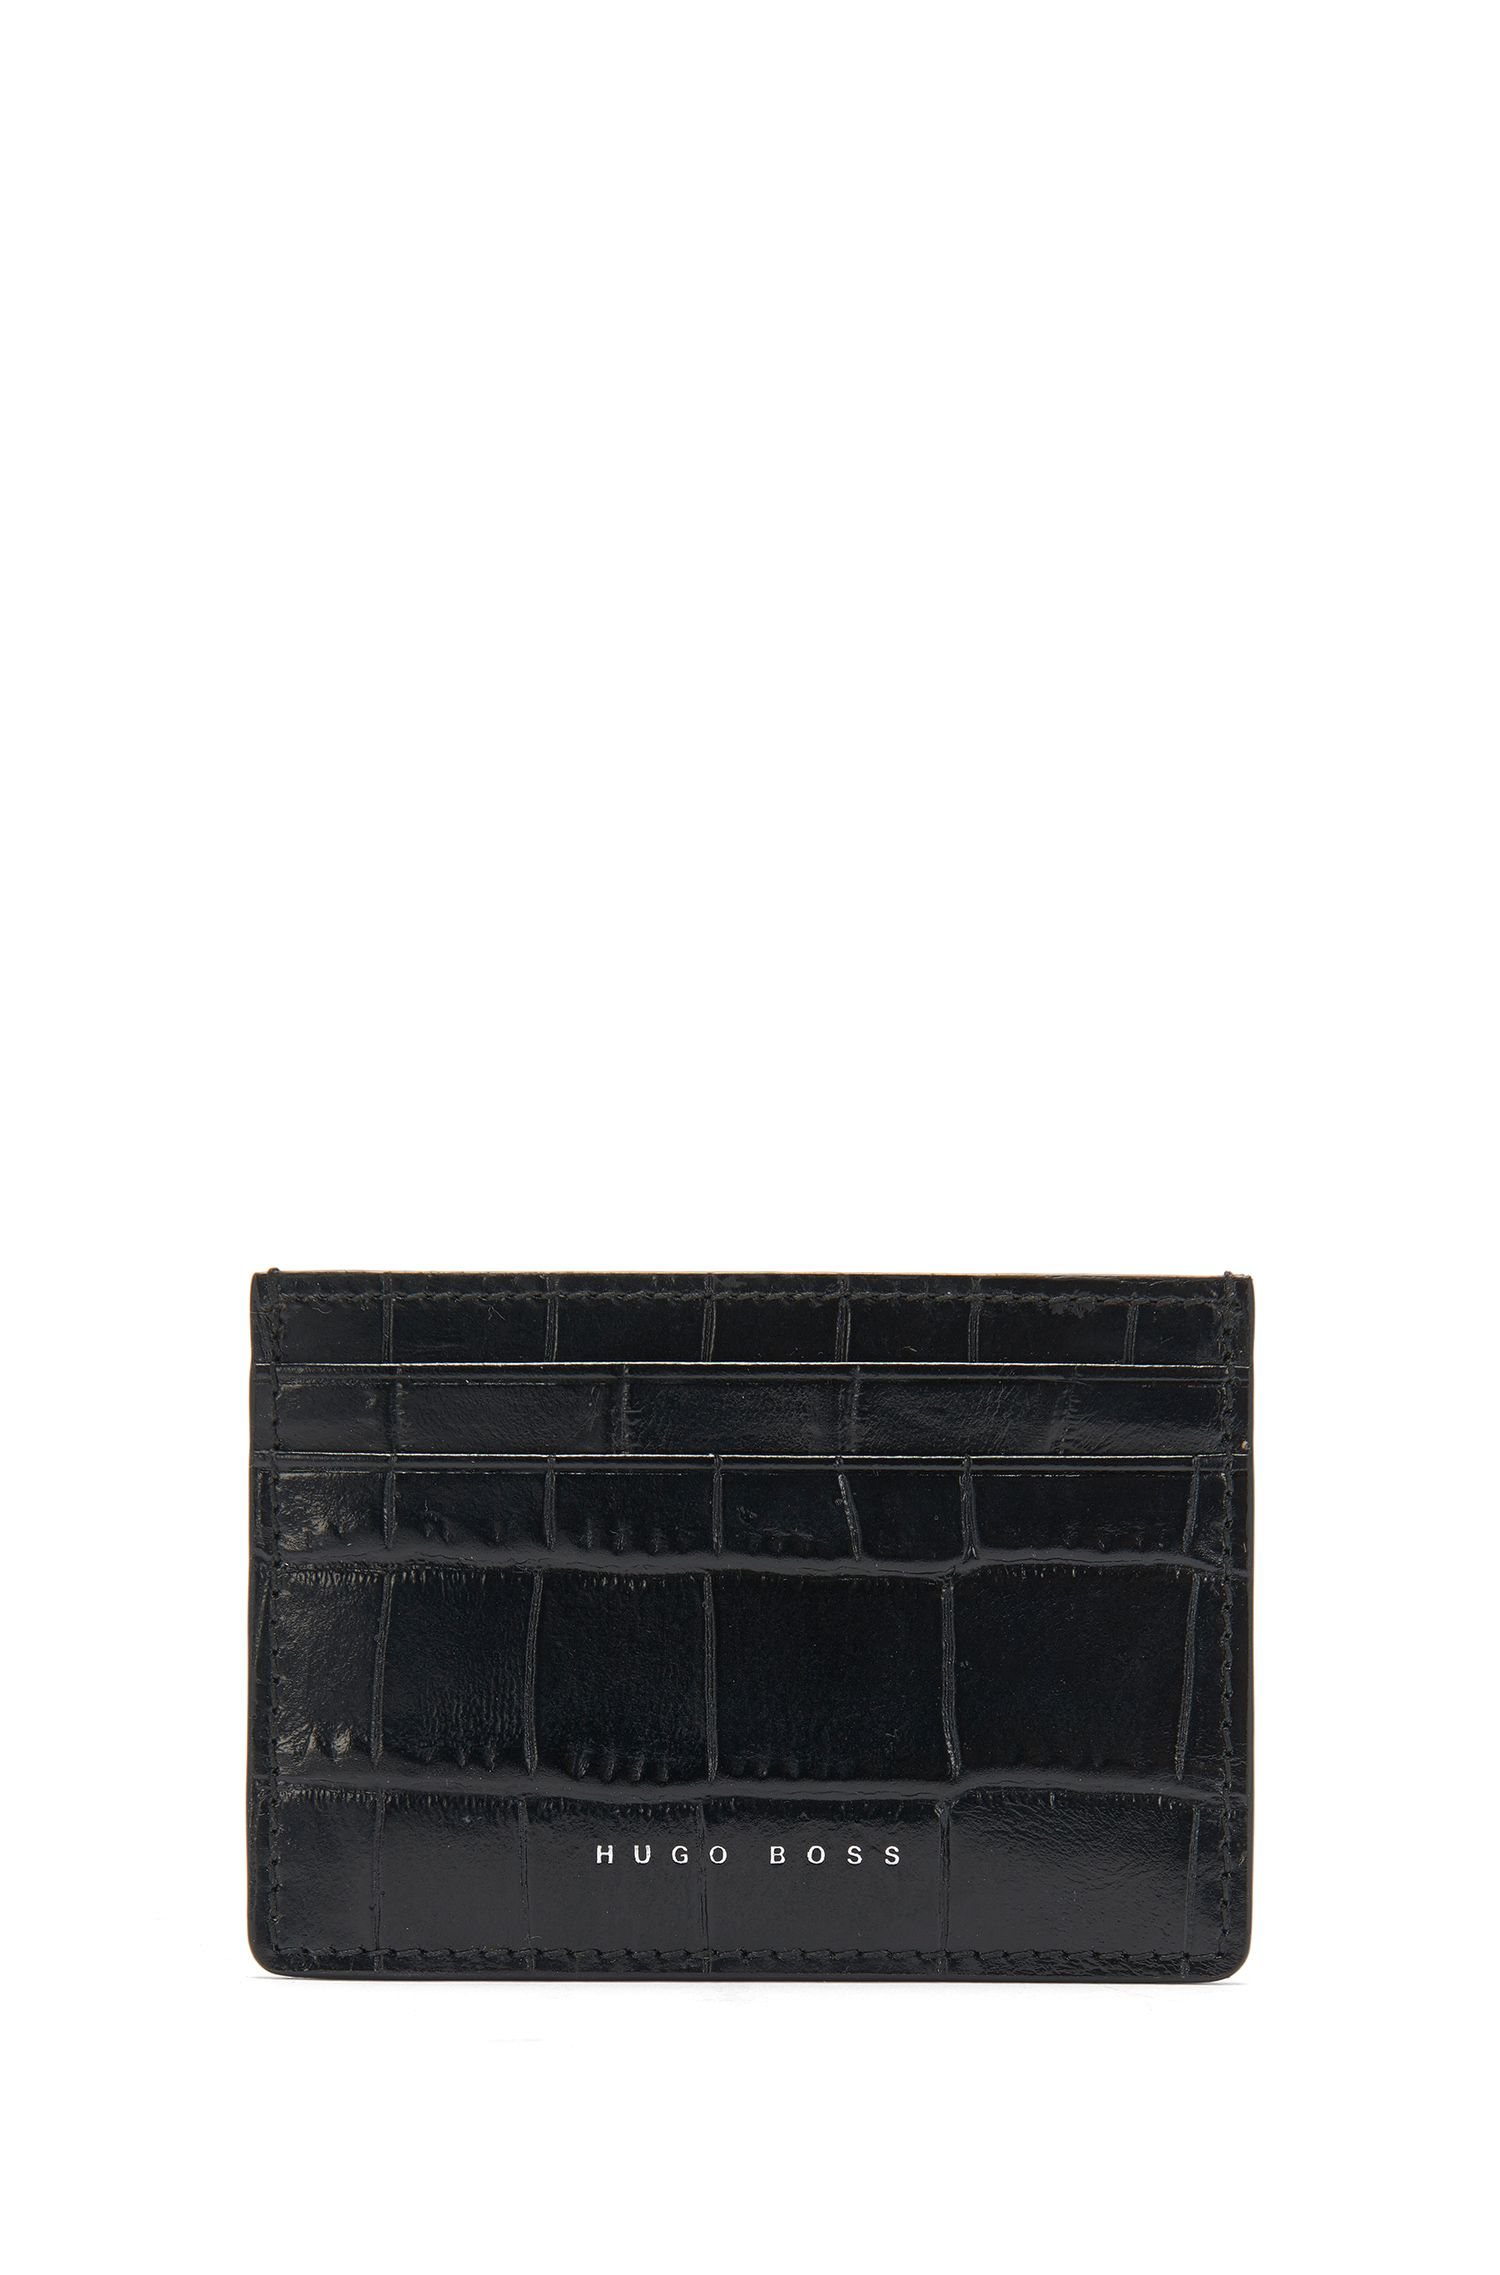 'Elite C S Card' | Calfskin Crocodile Card Case